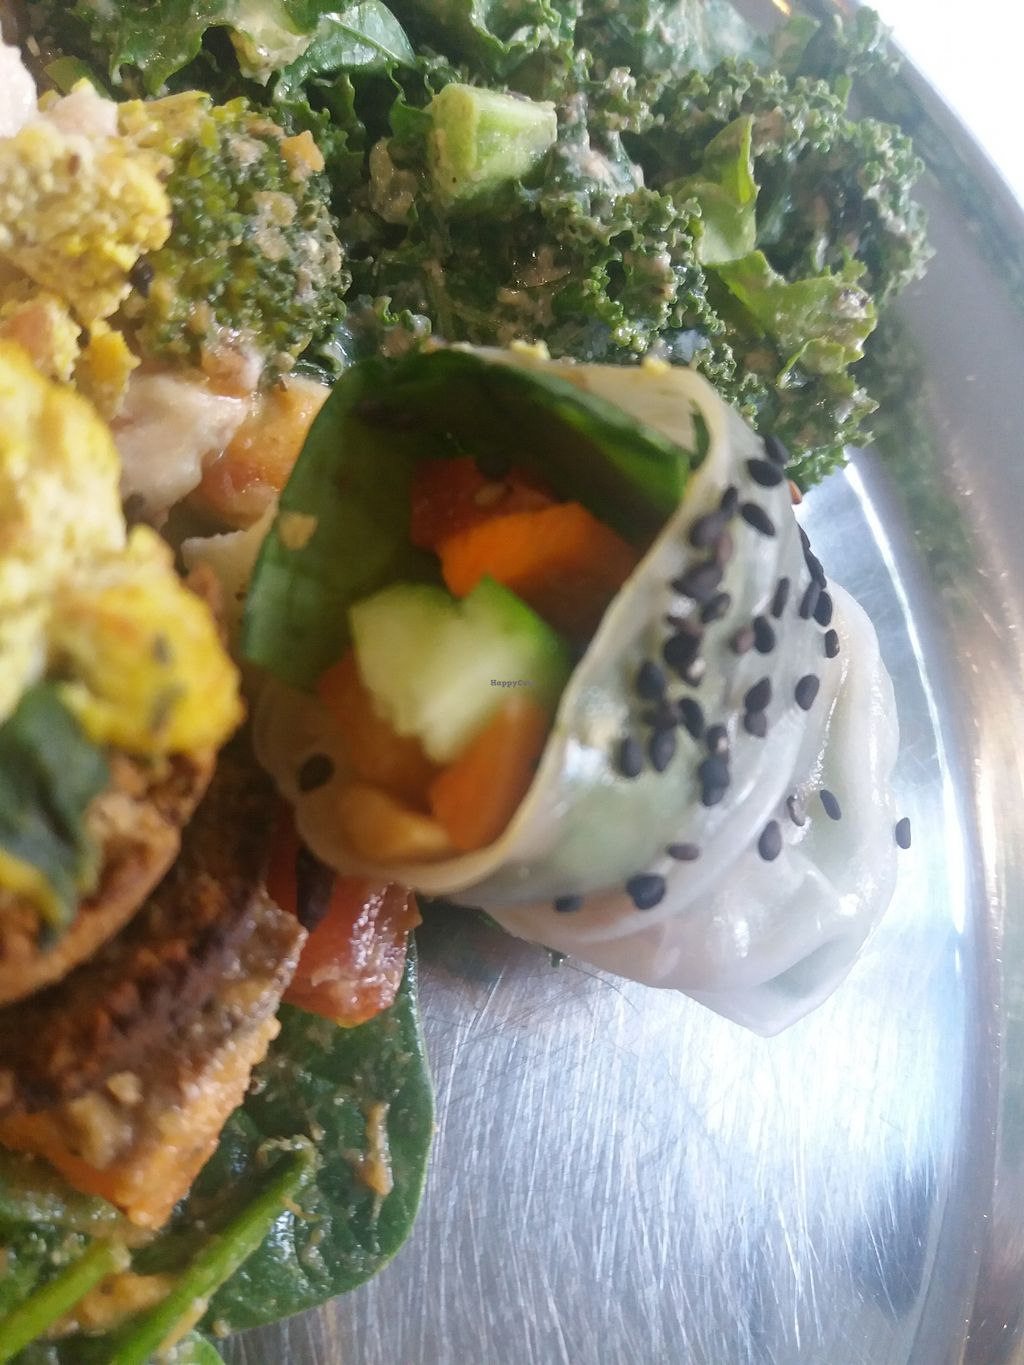 """Photo of OM Vegan Kitchen  by <a href=""""/members/profile/veganvirtues"""">veganvirtues</a> <br/>Spring roll and kale salad <br/> May 18, 2018  - <a href='/contact/abuse/image/80628/401403'>Report</a>"""